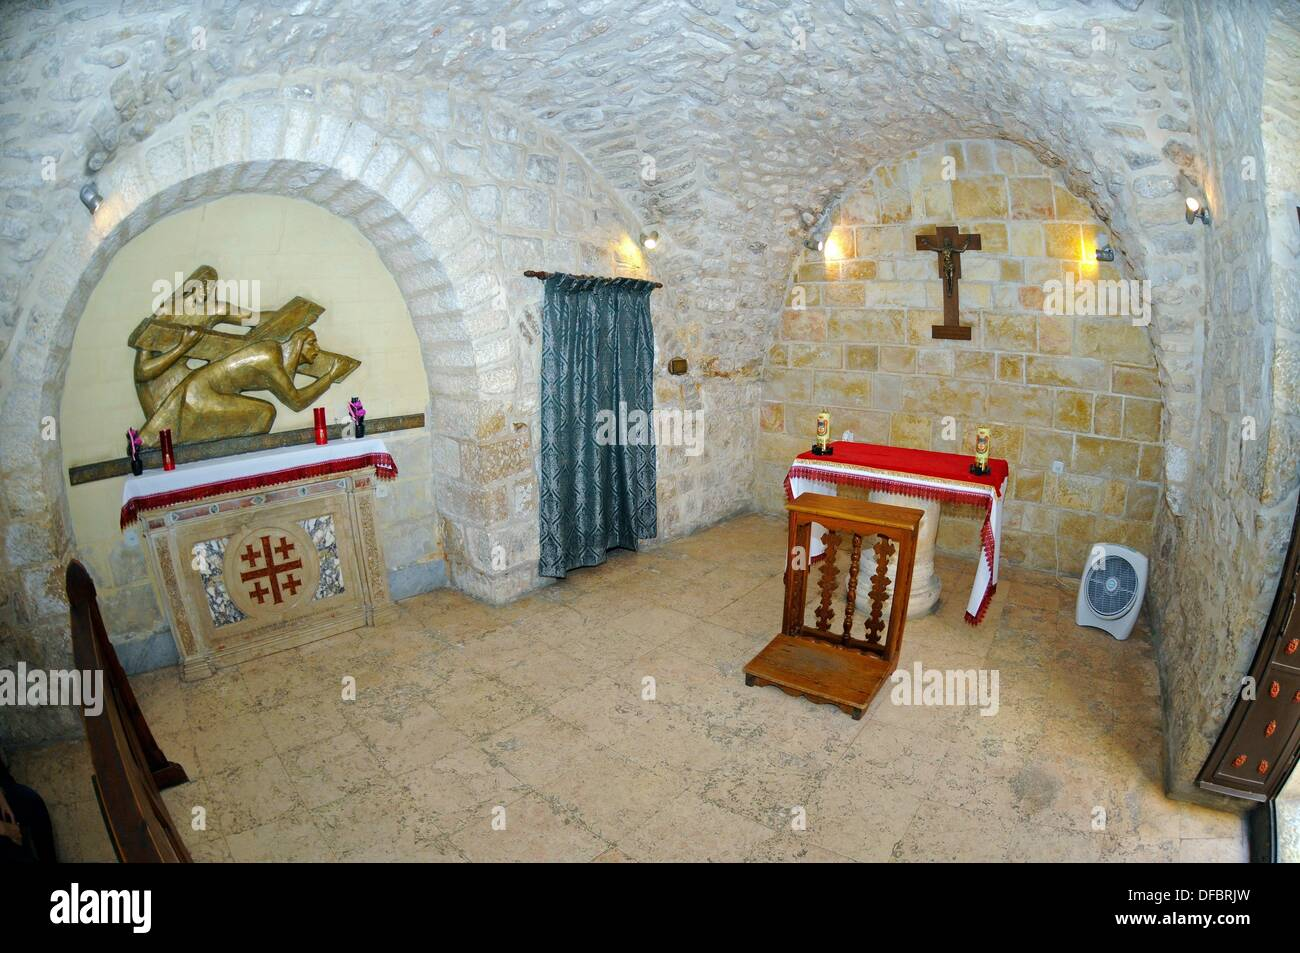 The Franciscan chapel of the fifth station of the Via Dolorosa, where the biblical event is commemorated, in which Stock Photo